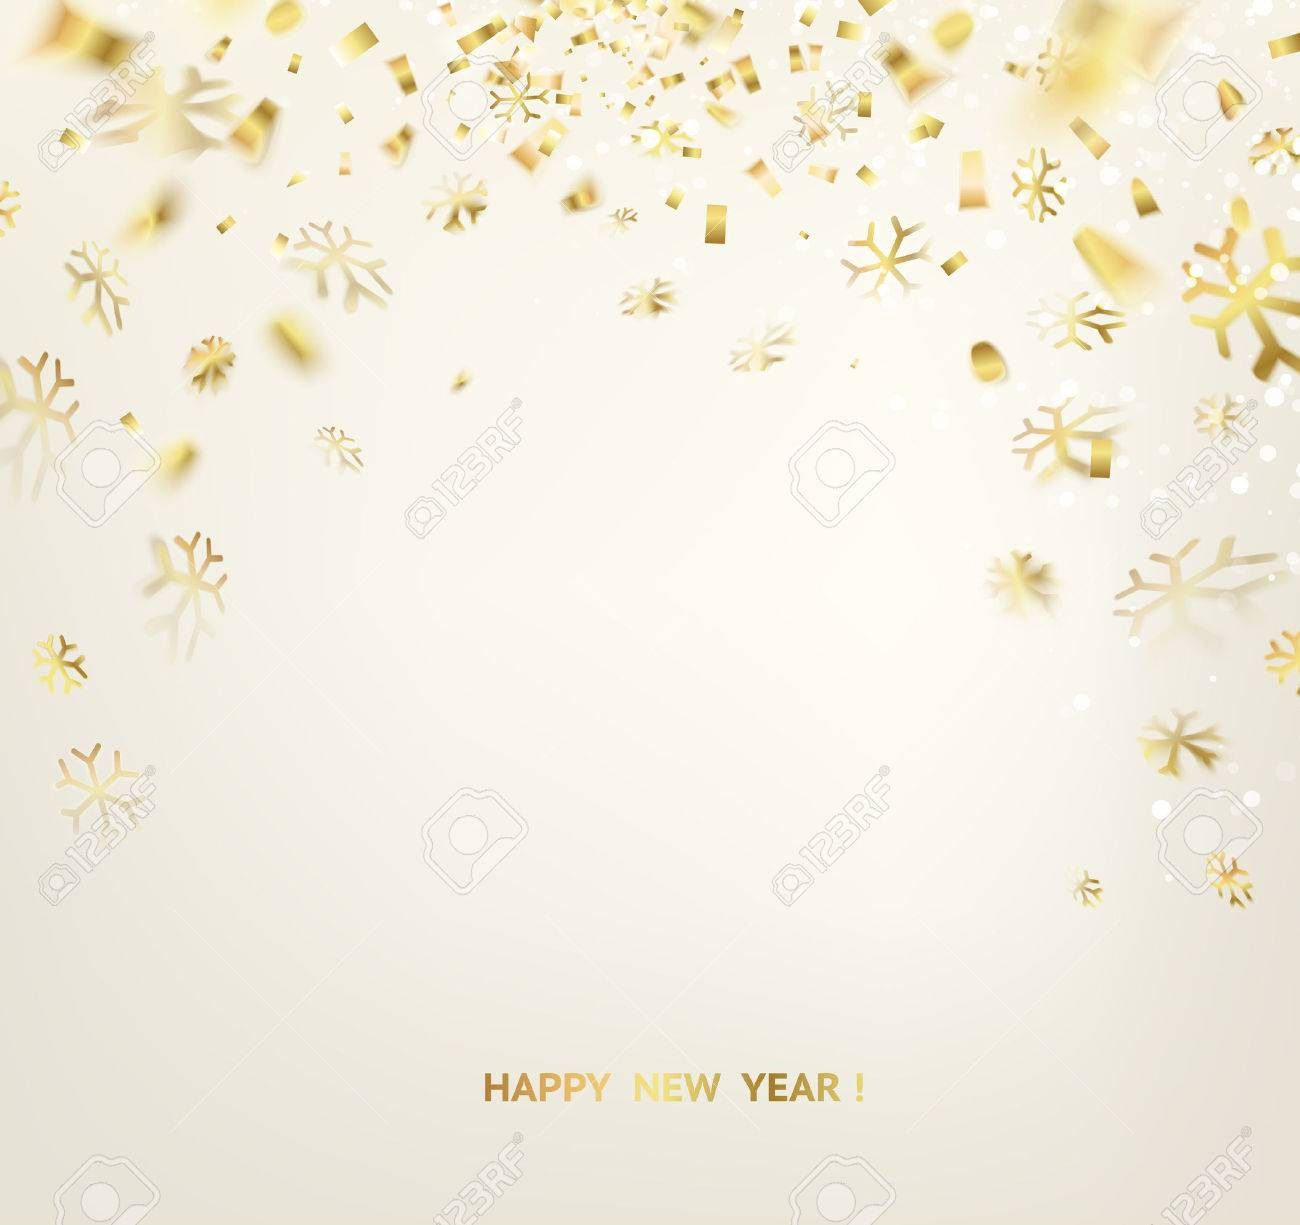 002 Wondrou New Year Card Template High Def  Happy Chinese 2020 FreeFull